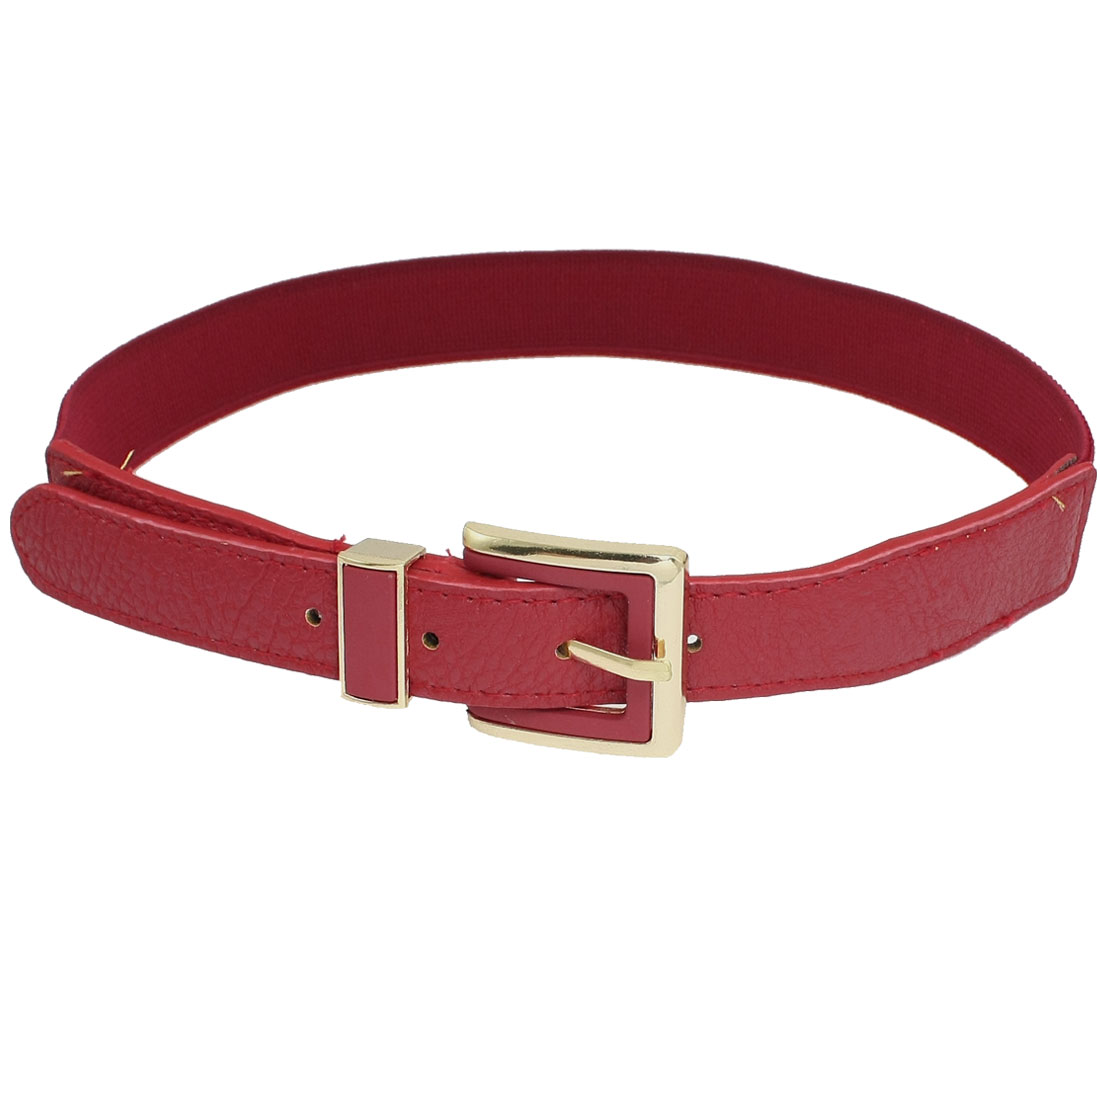 Gold Tone Single Pin Closure Red Faux Leather Textured Elastic Waist Belt for Women